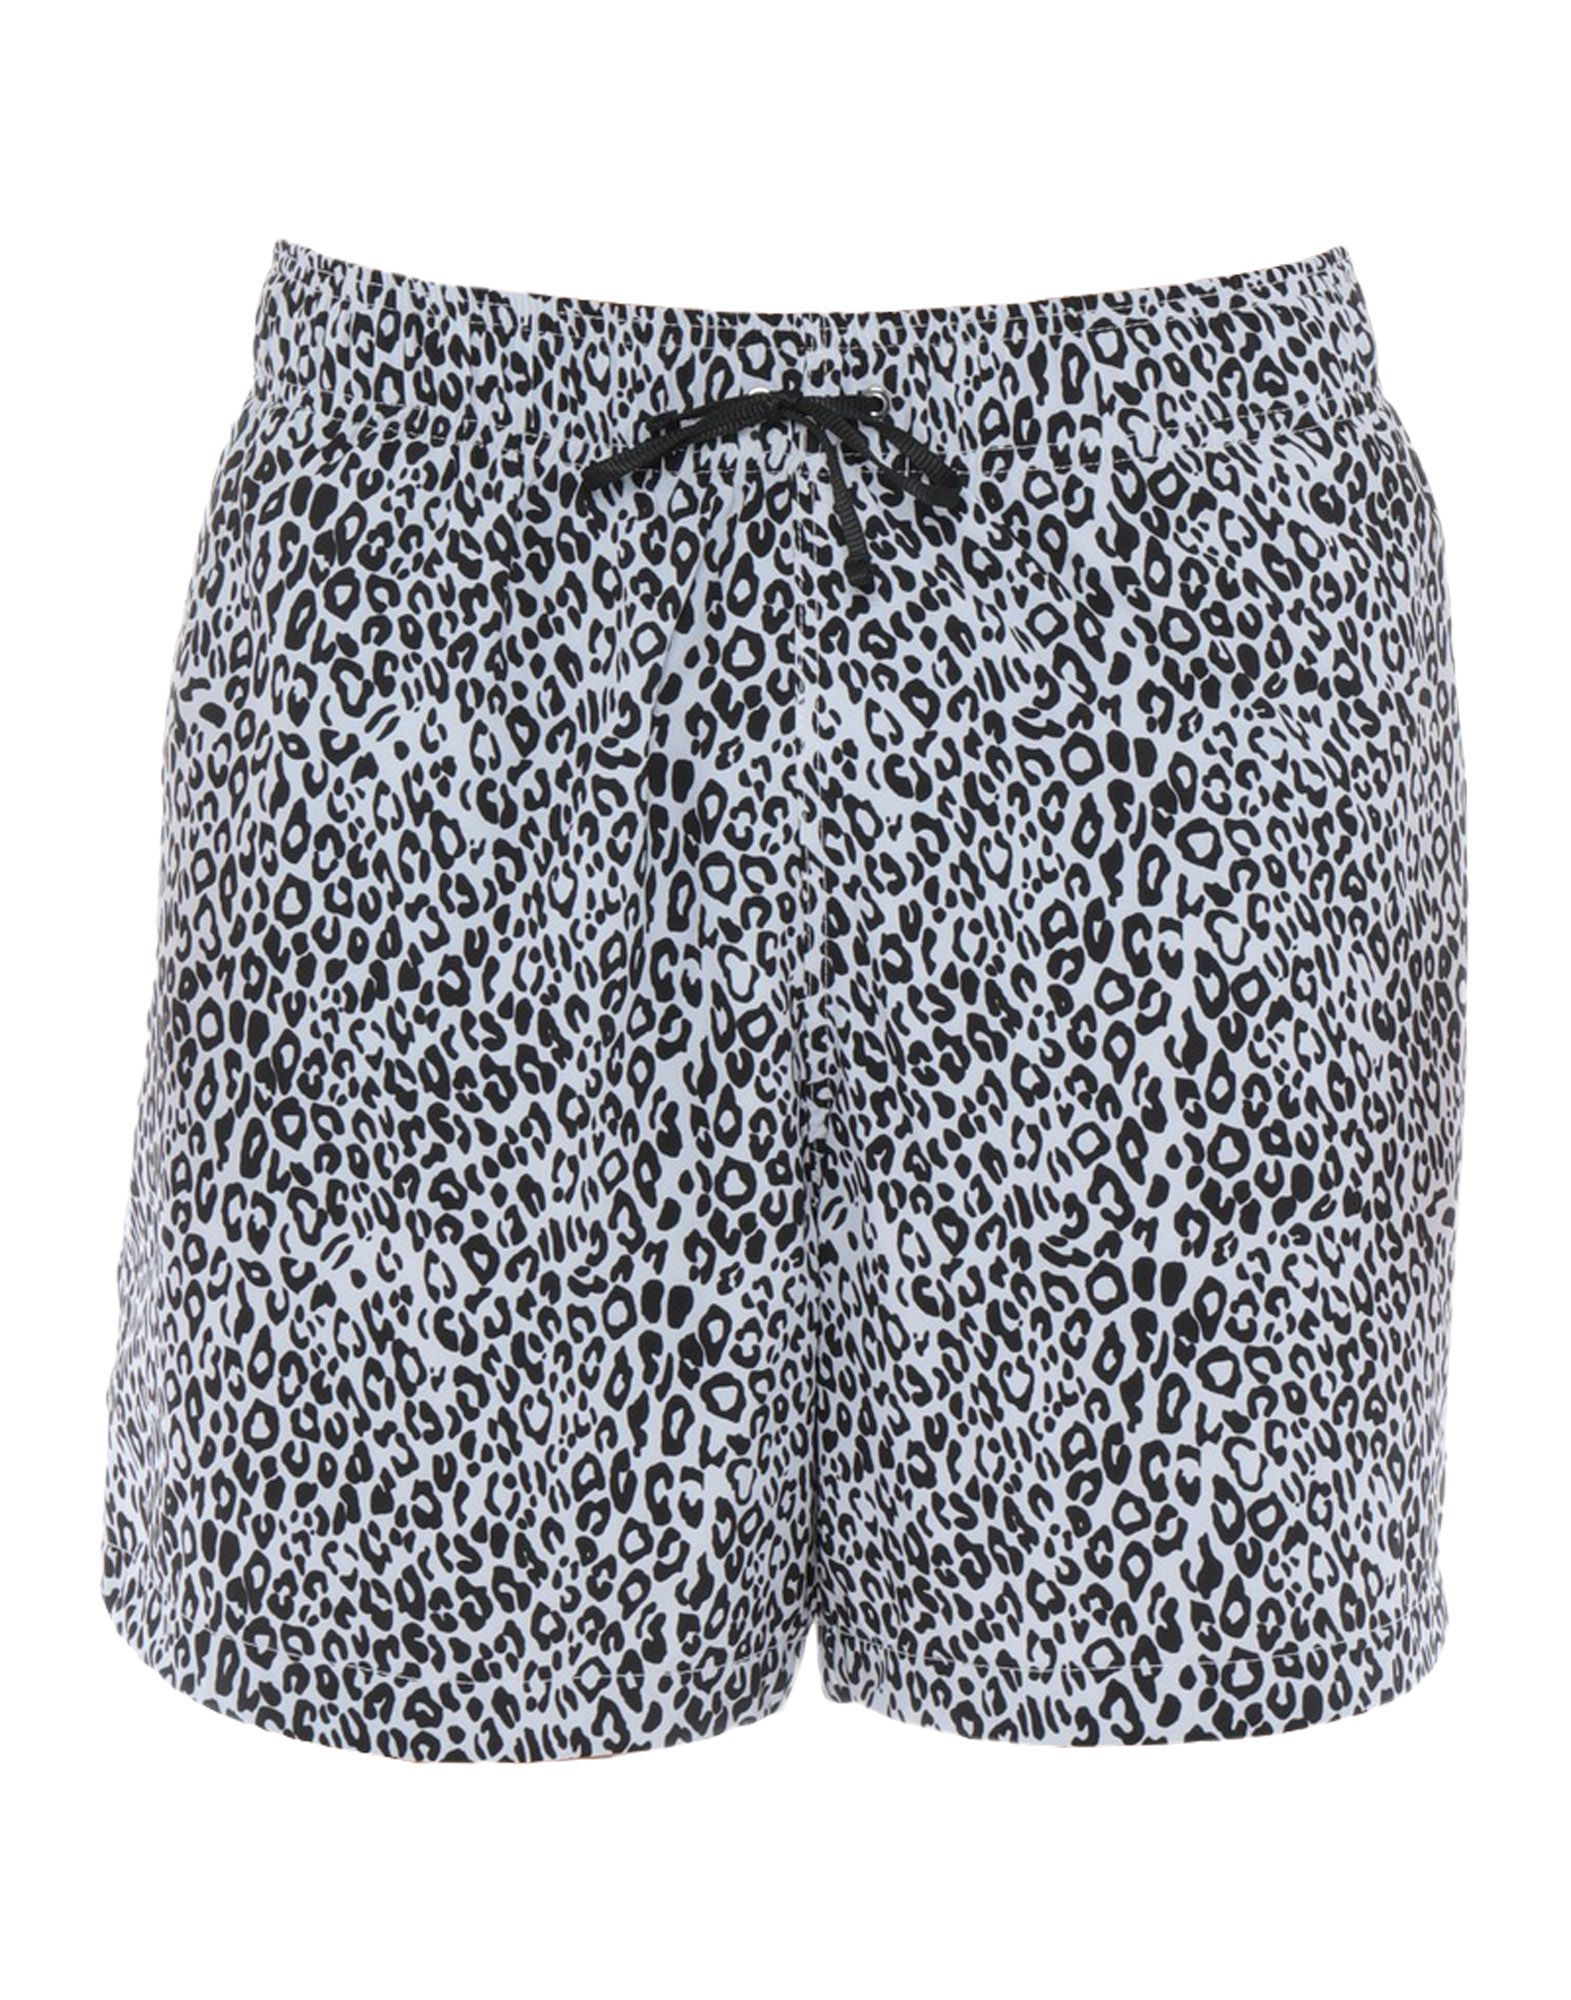 71c8e9706793c AMIRI SWIM TRUNKS. #amiri #cloth | Amiri in 2019 | Swim trunks ...